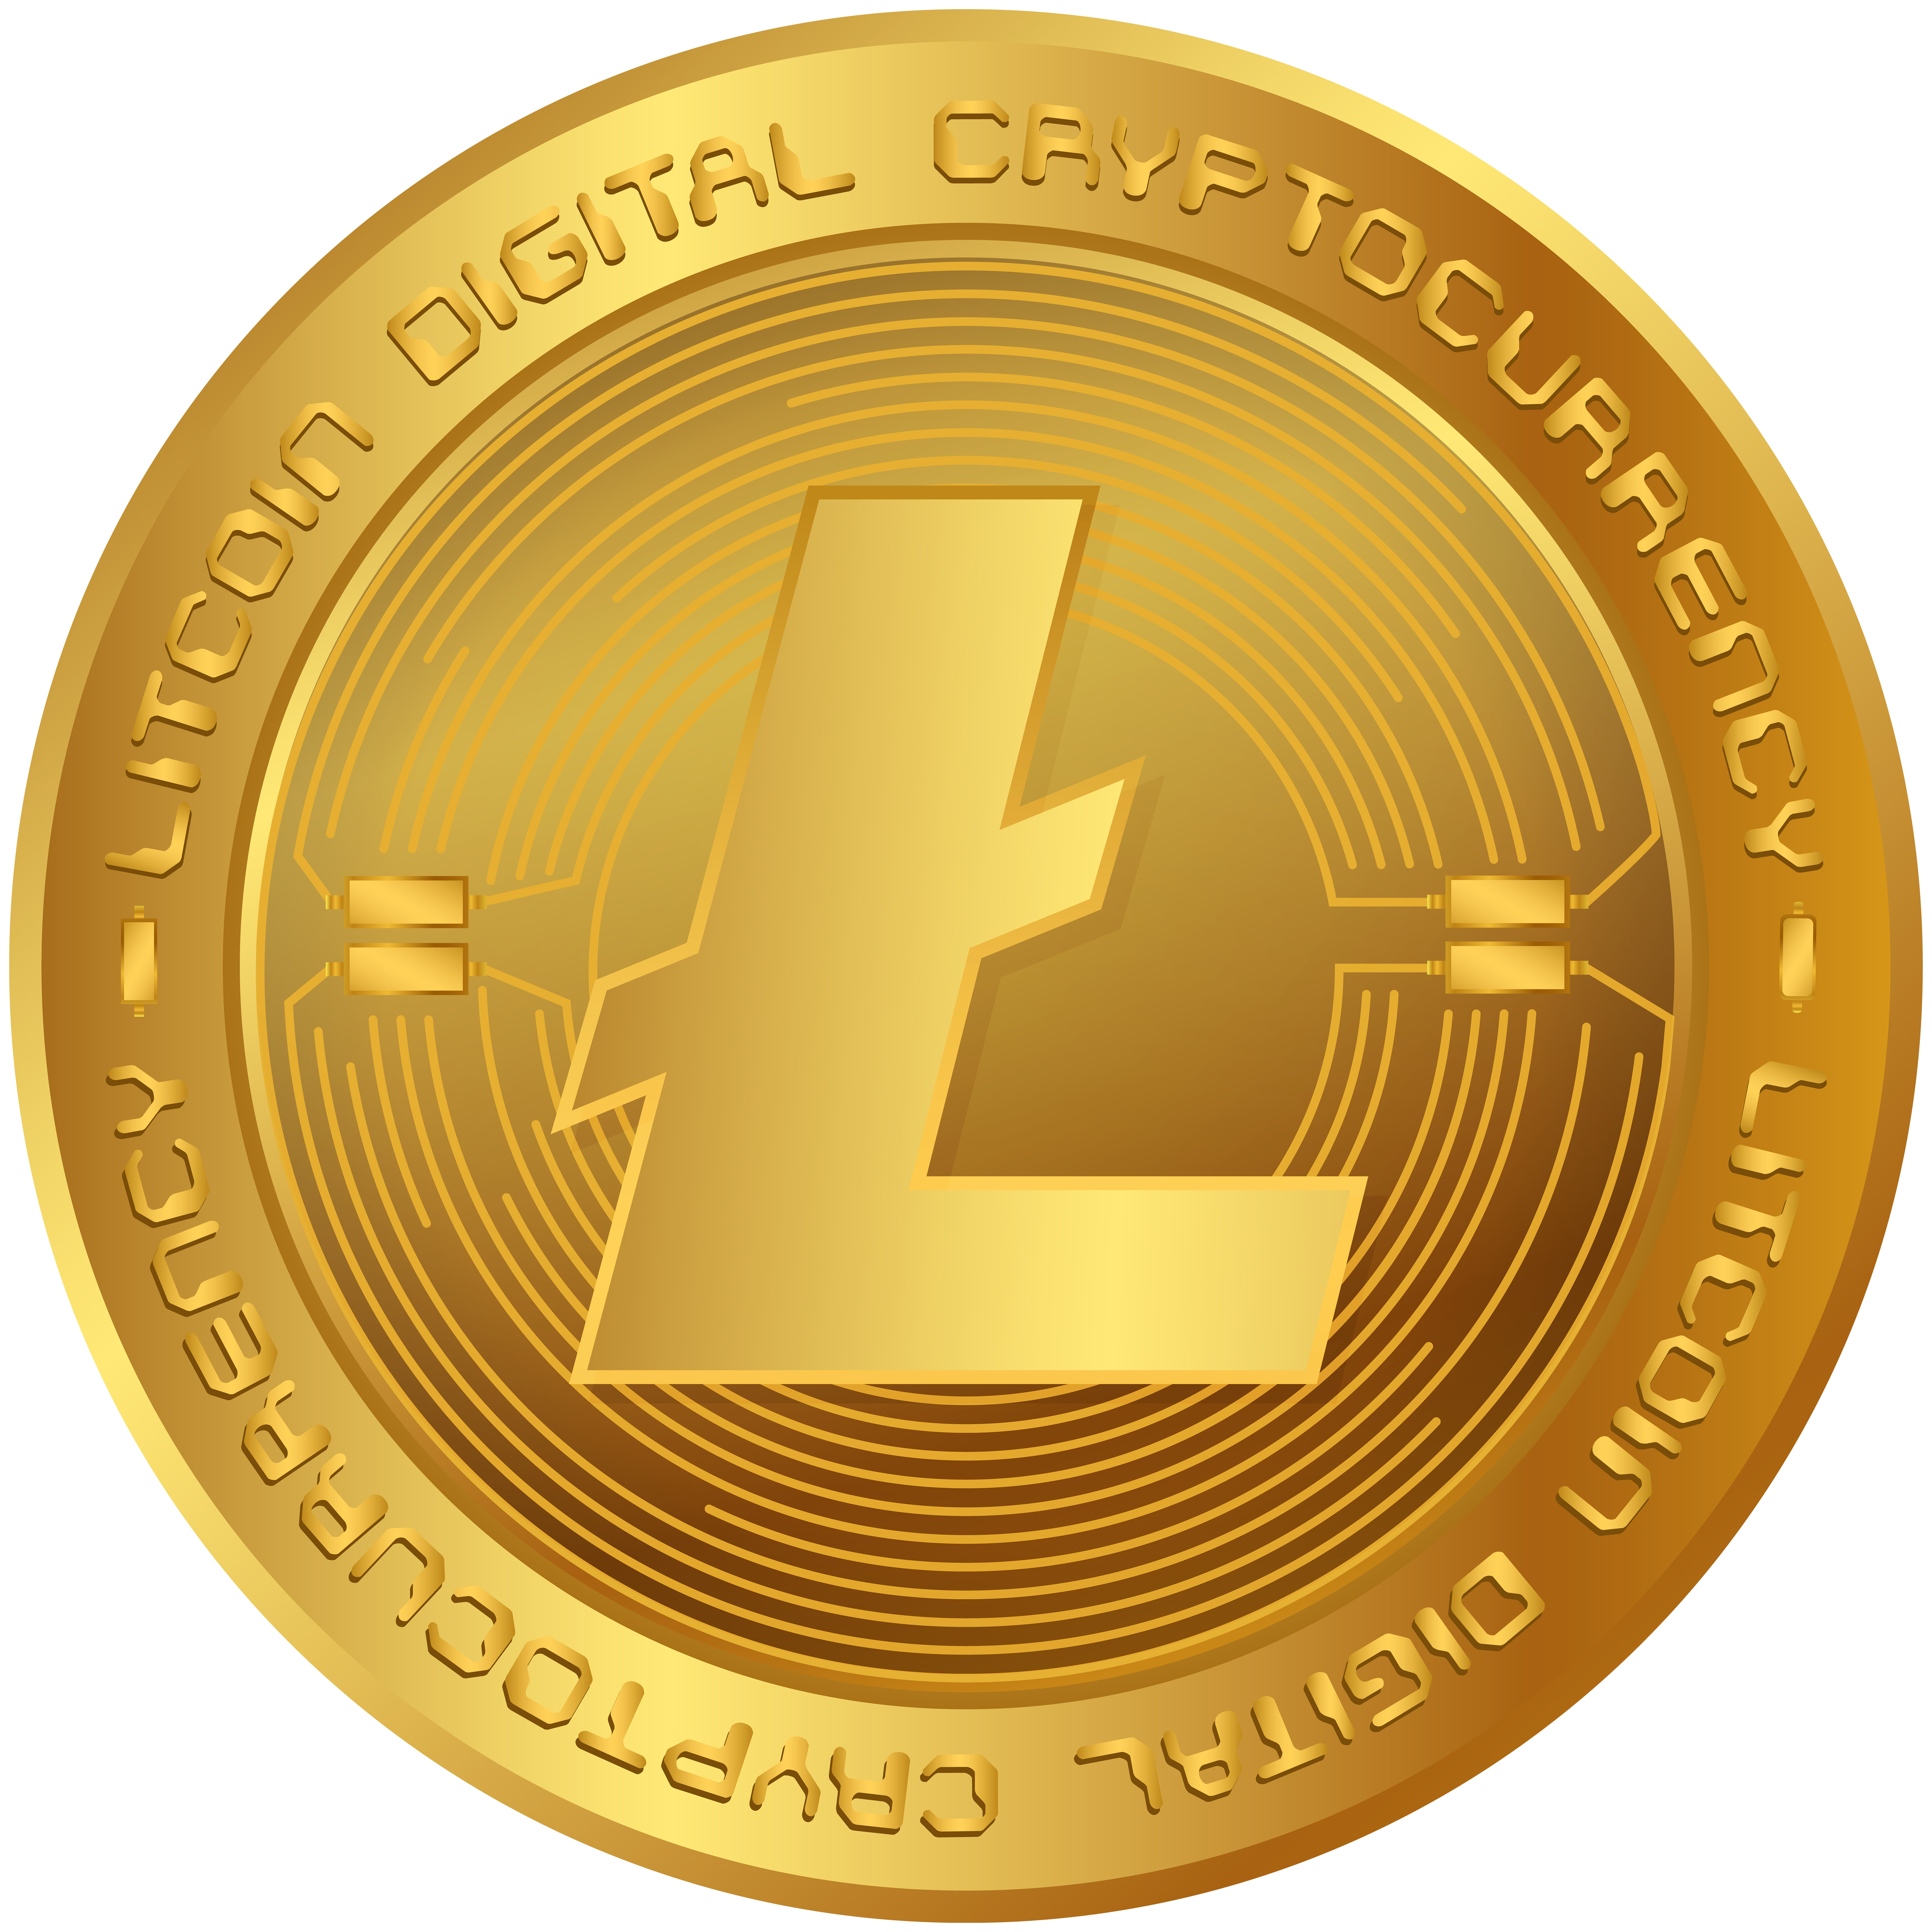 Litecoin LTC Cryptocurrency PNG Clip Art Image.